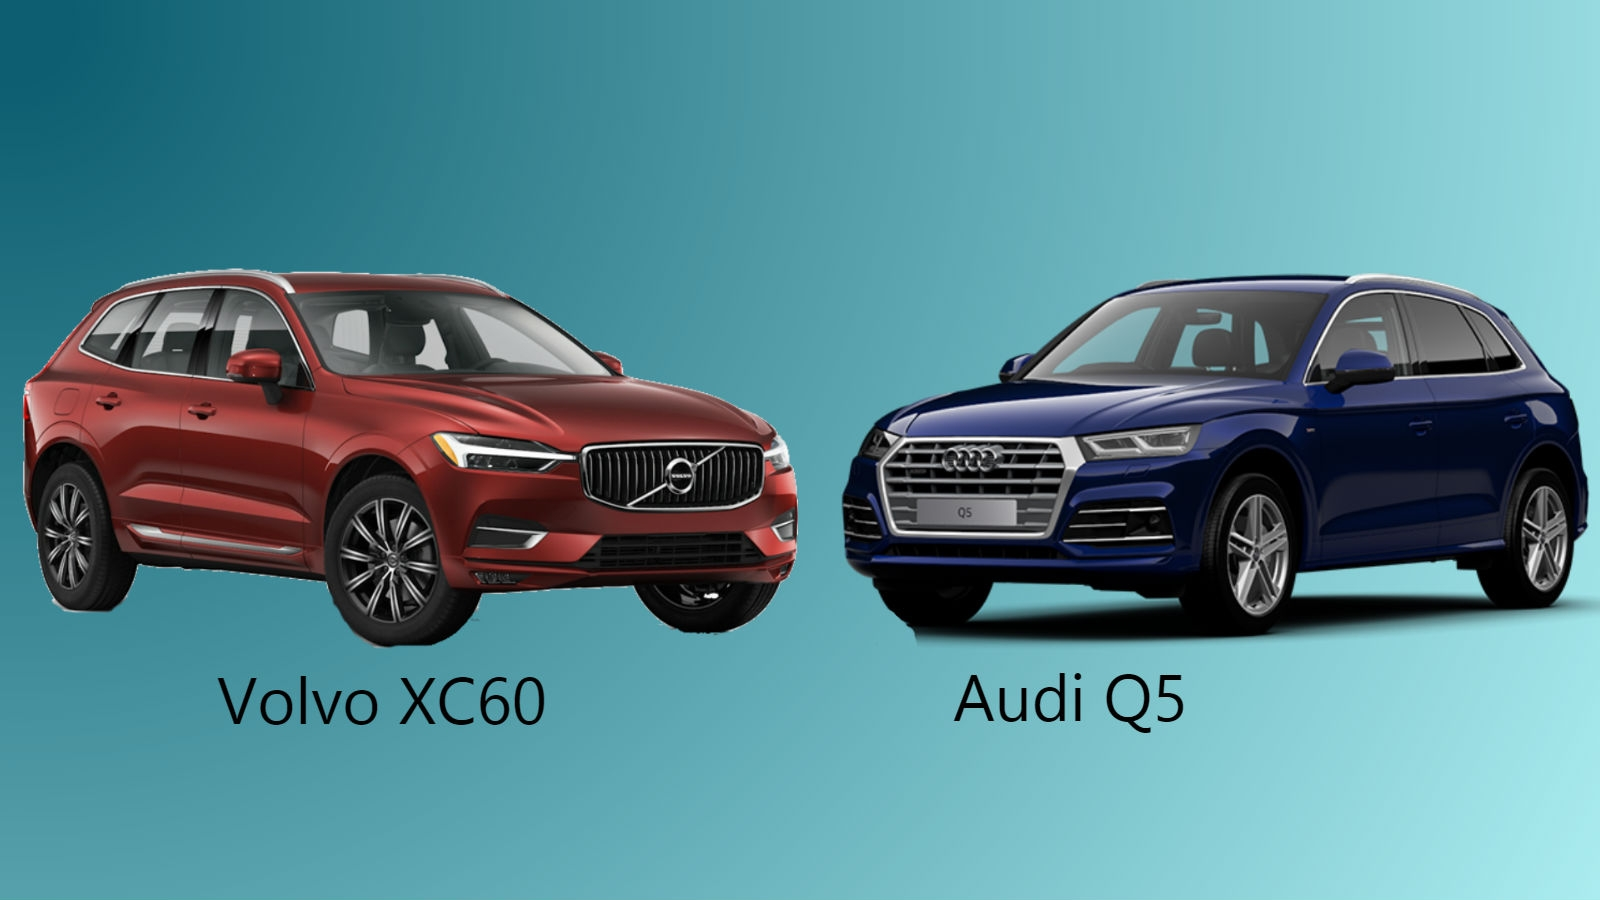 Mid-Range SUV Audi Q5 vs Volvo XC60 — Who's Ahead In the Game? - The Quint